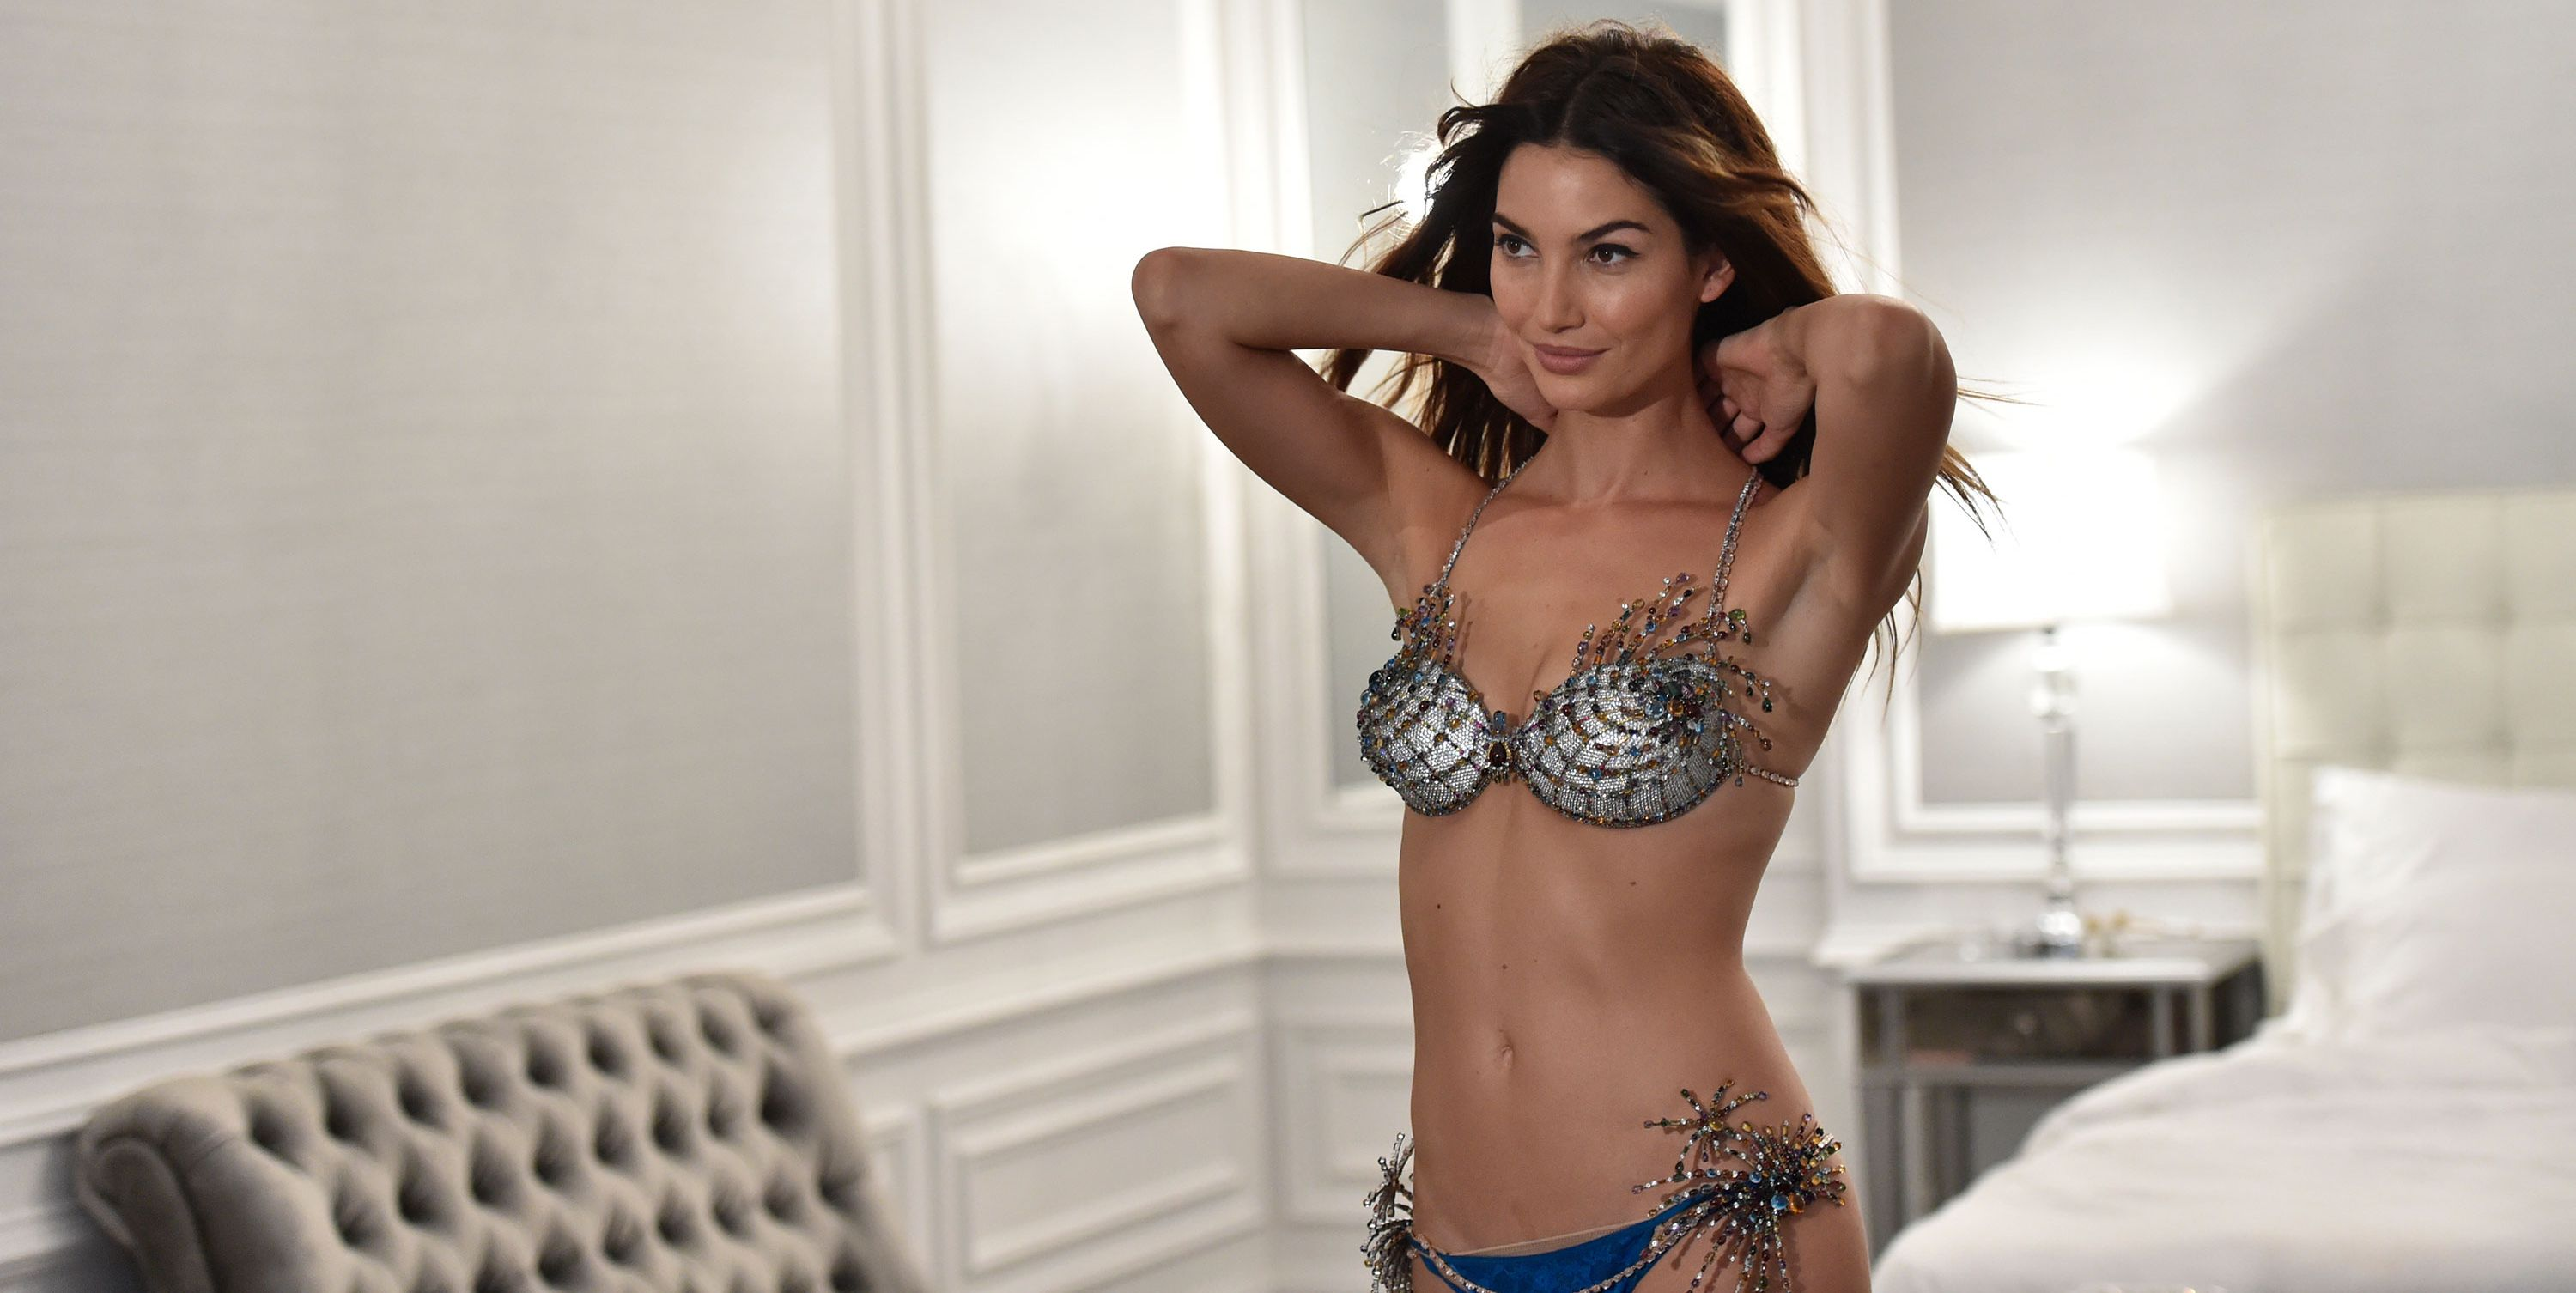 Lily Aldridge wearing the Fantasy bra on the Victoria's Secret catwalk